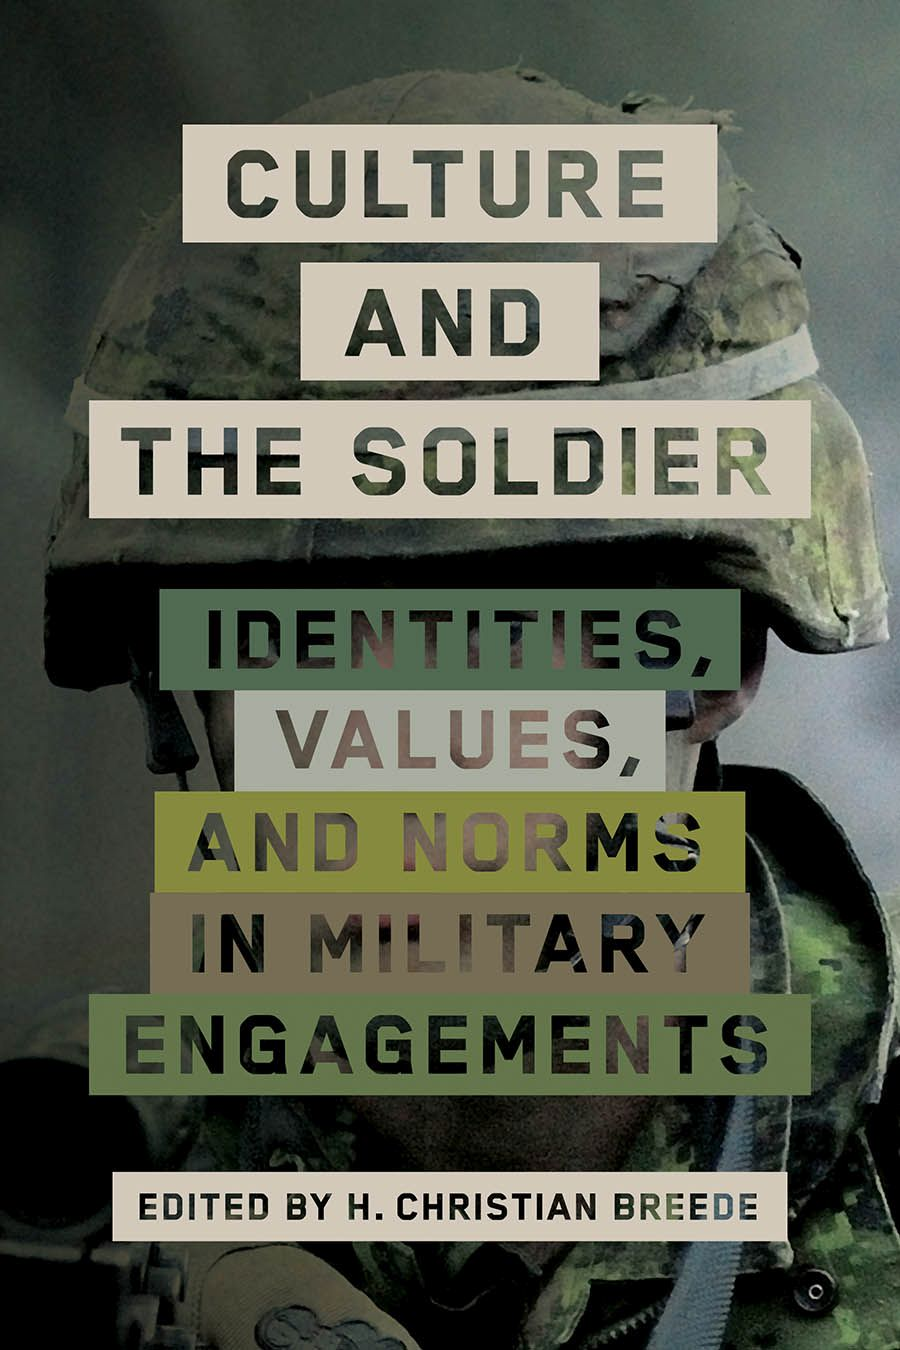 Culture and the Soldier: Identities, Values, and Norms in Military Engagements